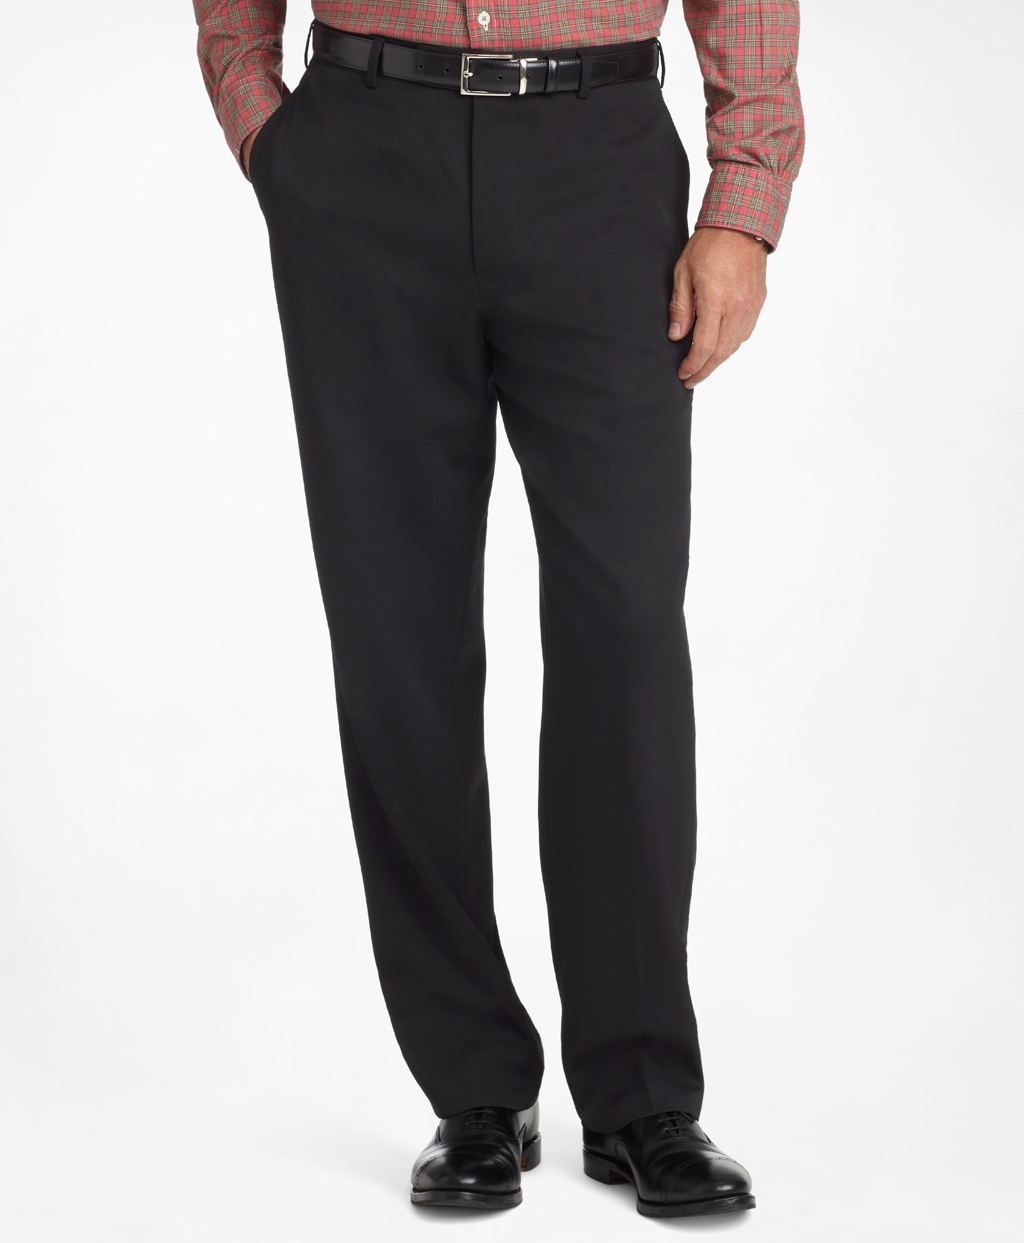 mens dress pants madison fit plain-front classic gabardine trousers YYCQOFI